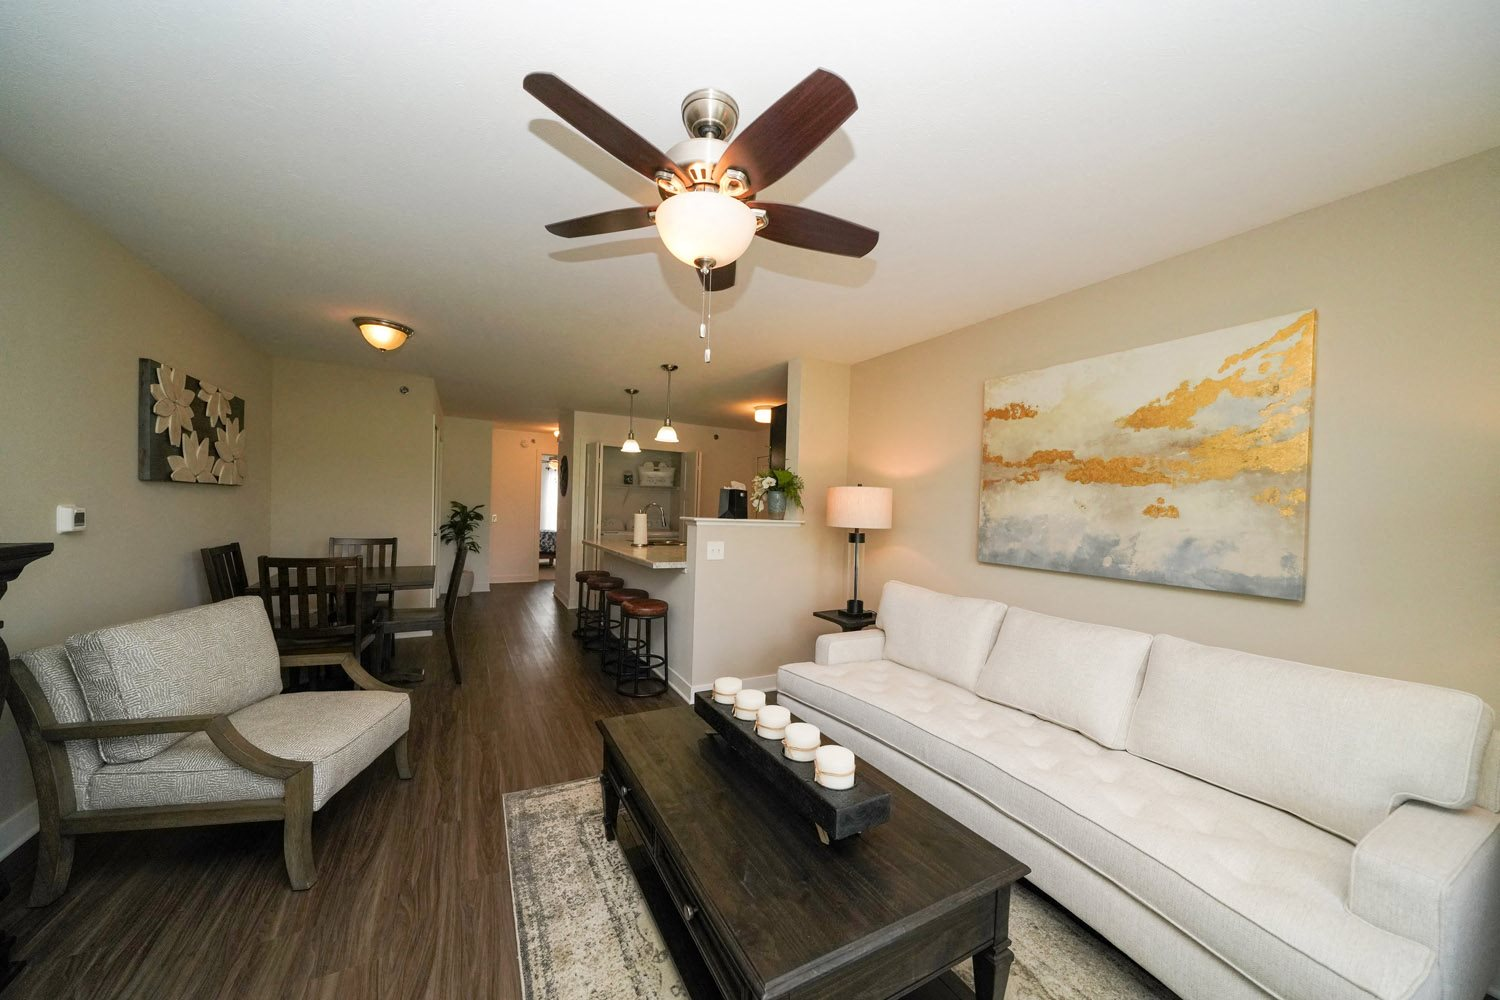 Ceiling Fans in Living Spaces at Copper Creek Apartment Homes, KS 67101